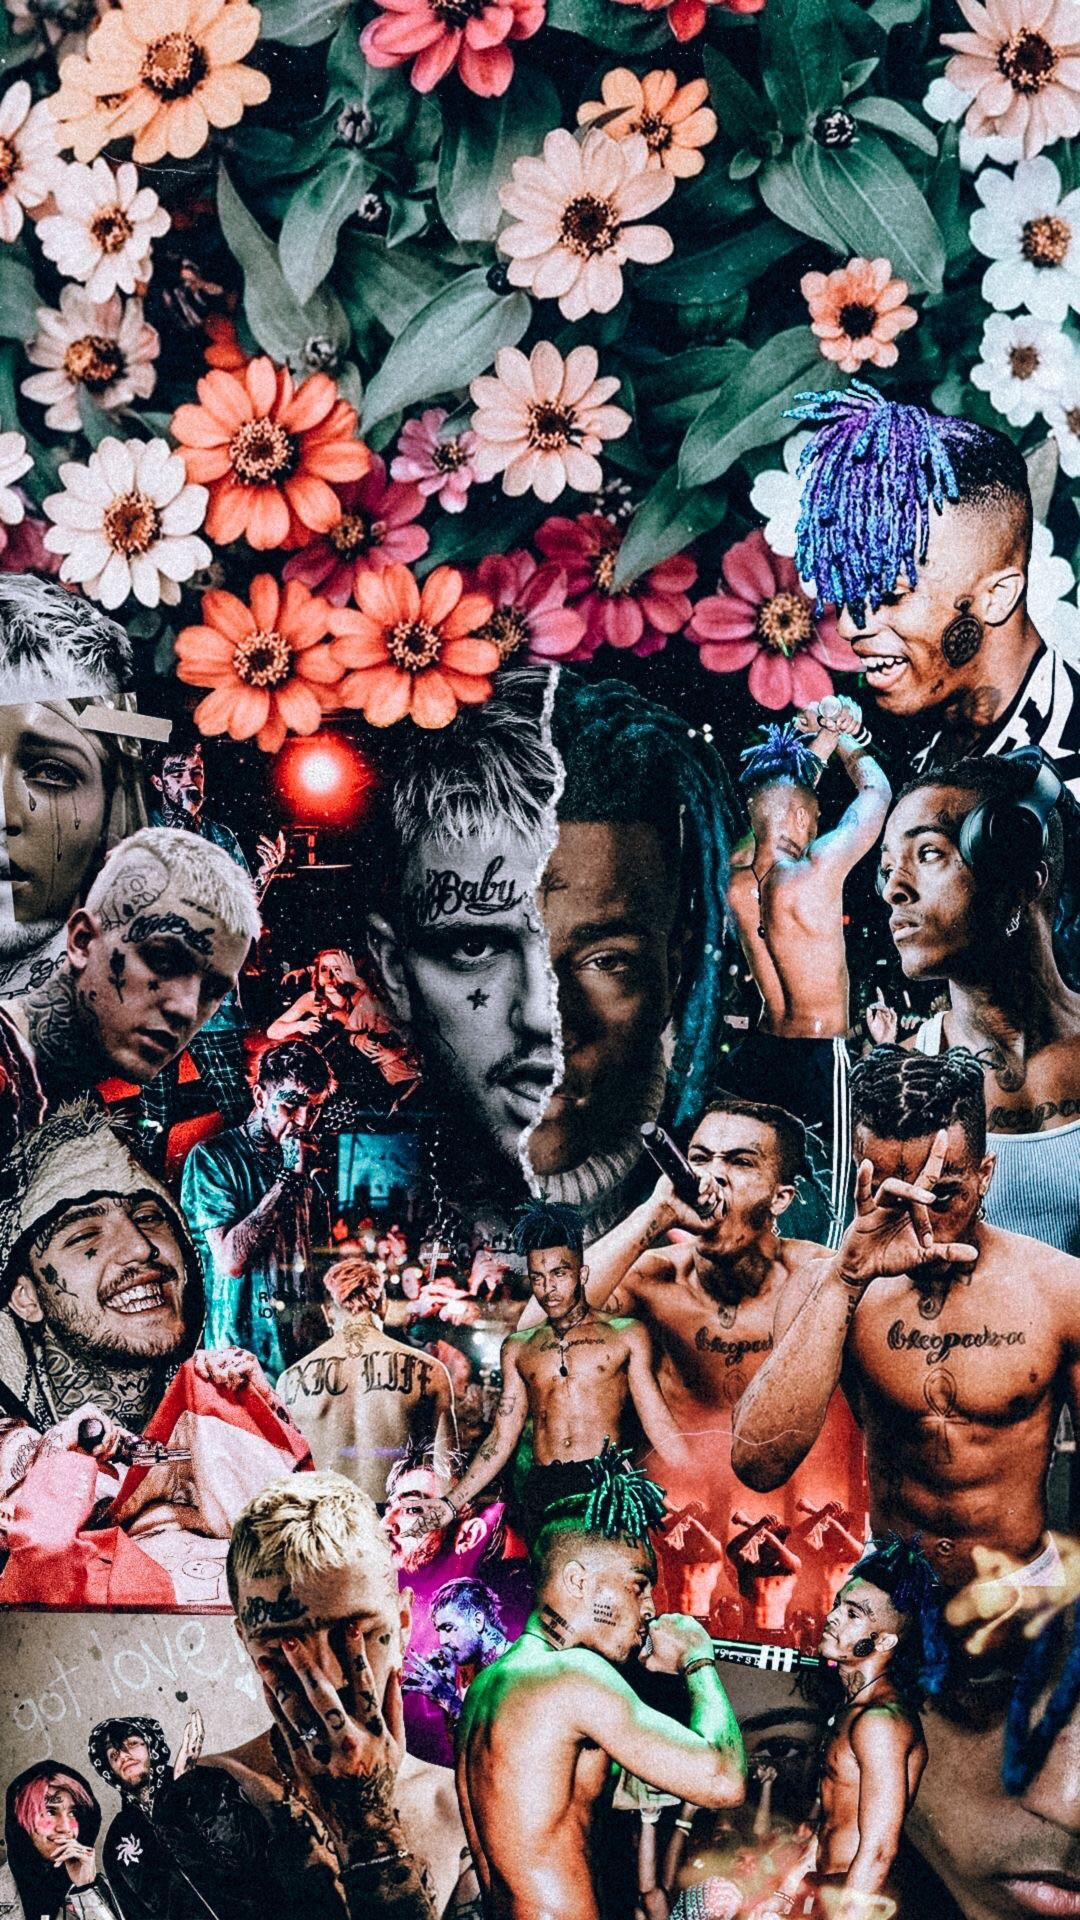 17+] Lil Peep And XXXTentacion Wallpapers